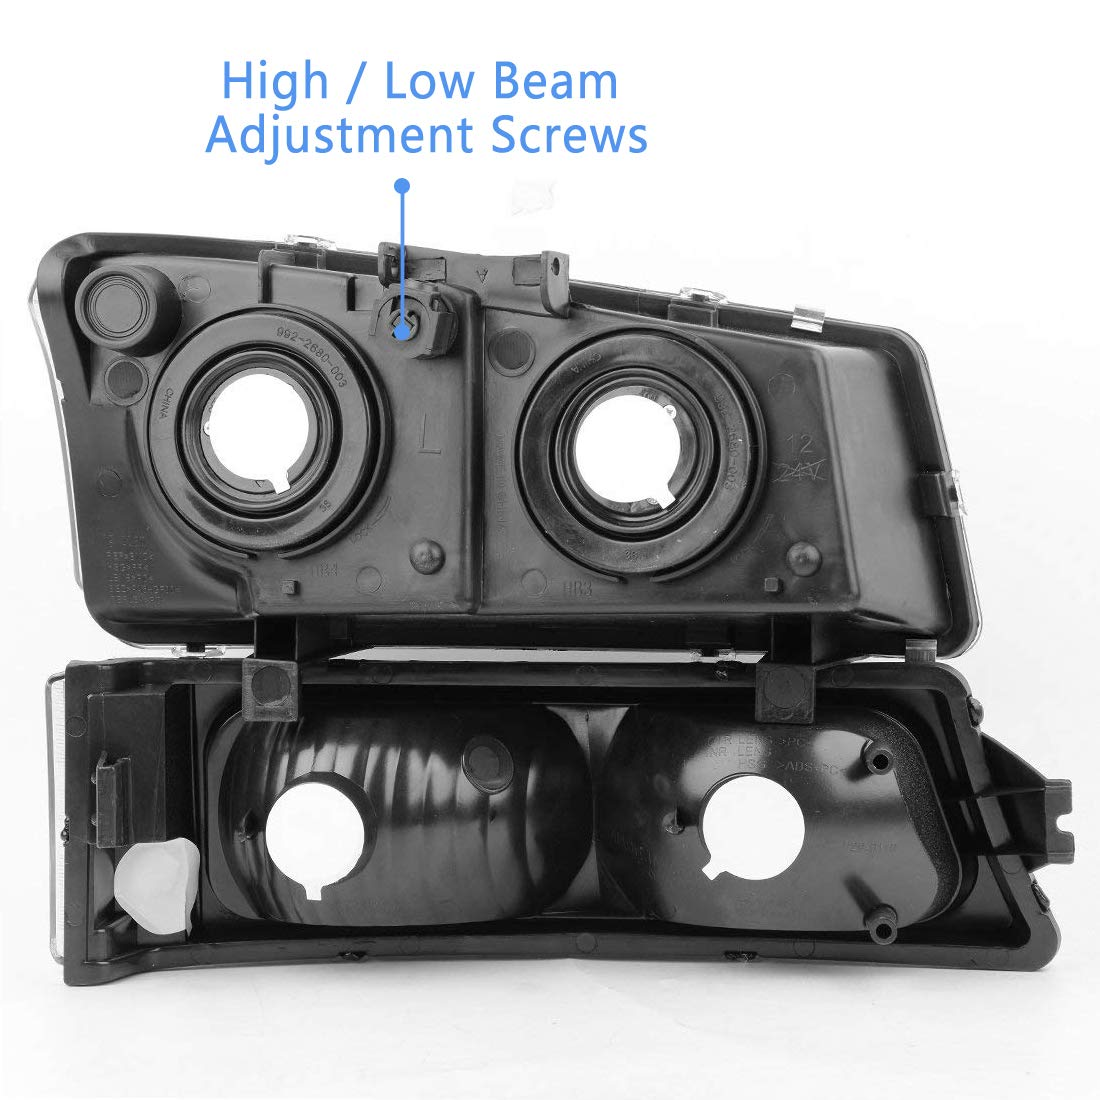 Headlight Assembly kit for 2003-2006 Chevy Avalanche